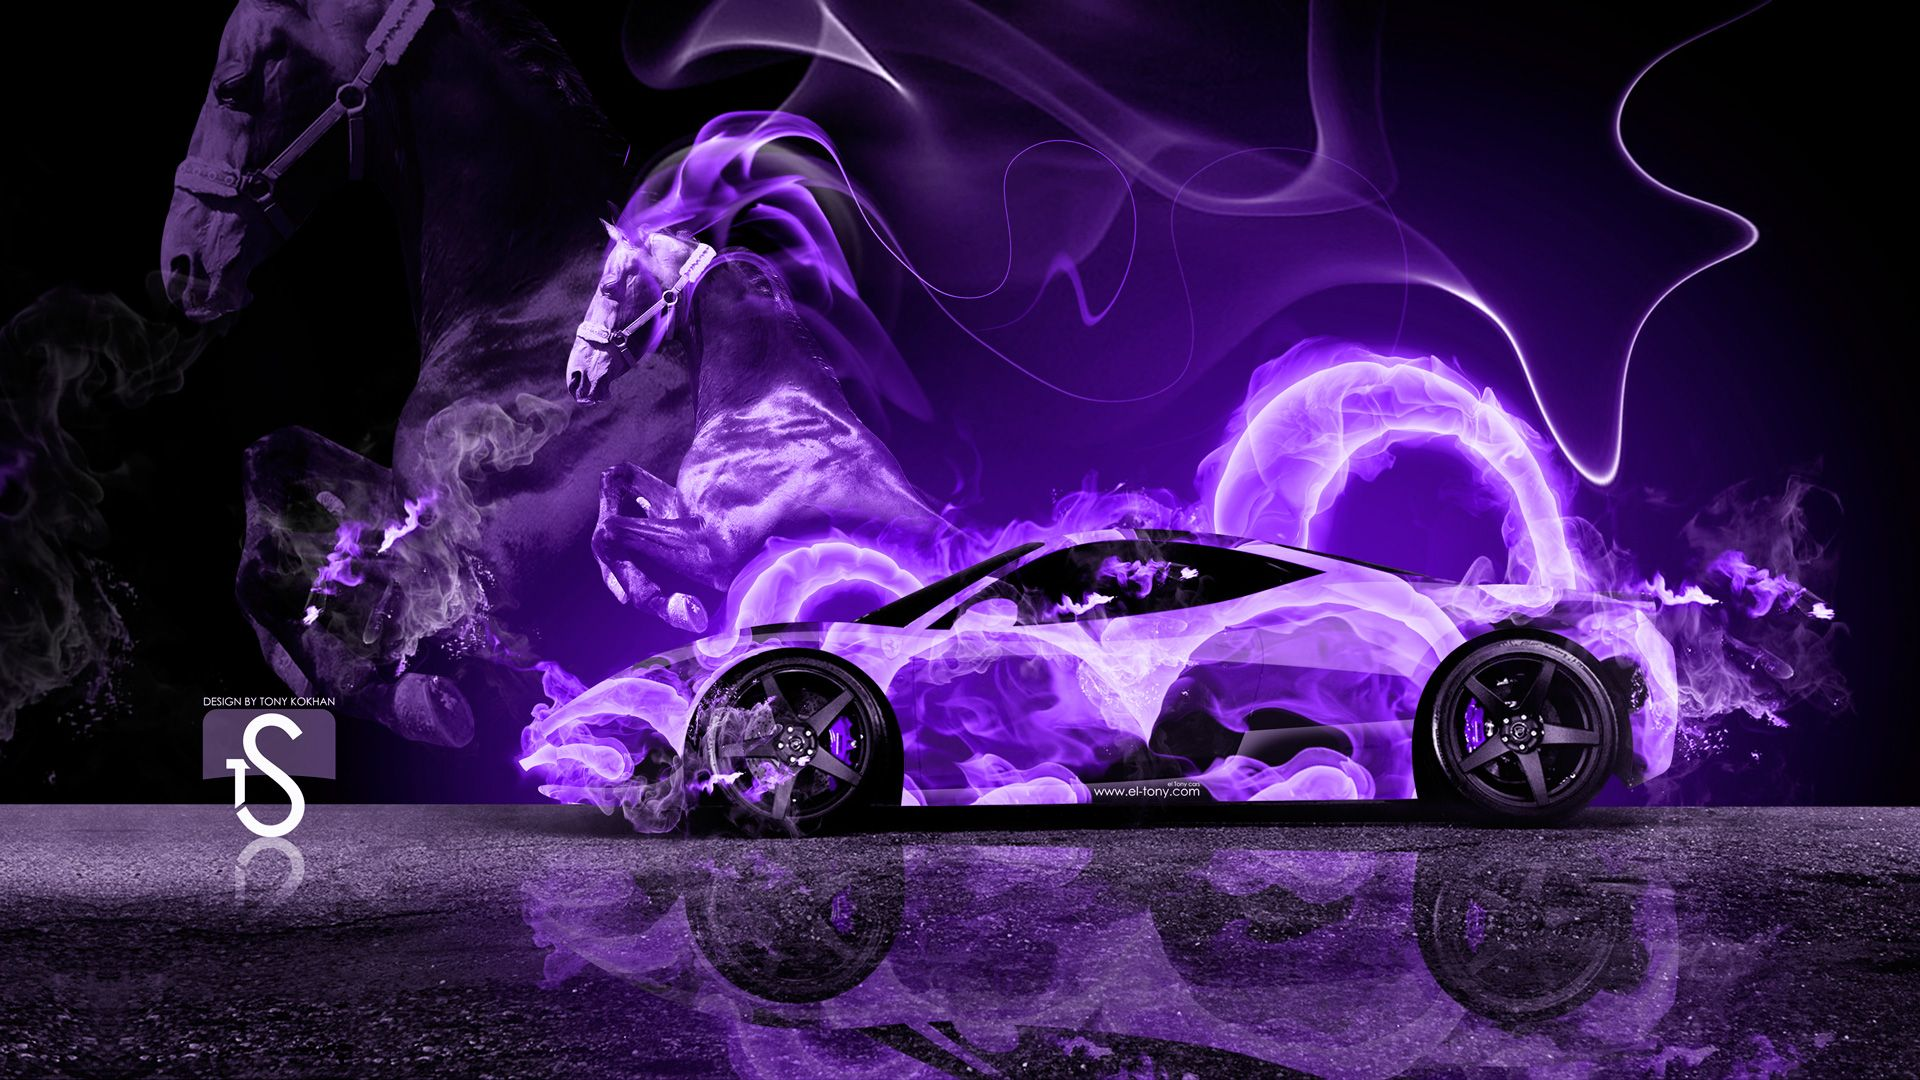 neon flame motorcycle wallpaper - photo #18